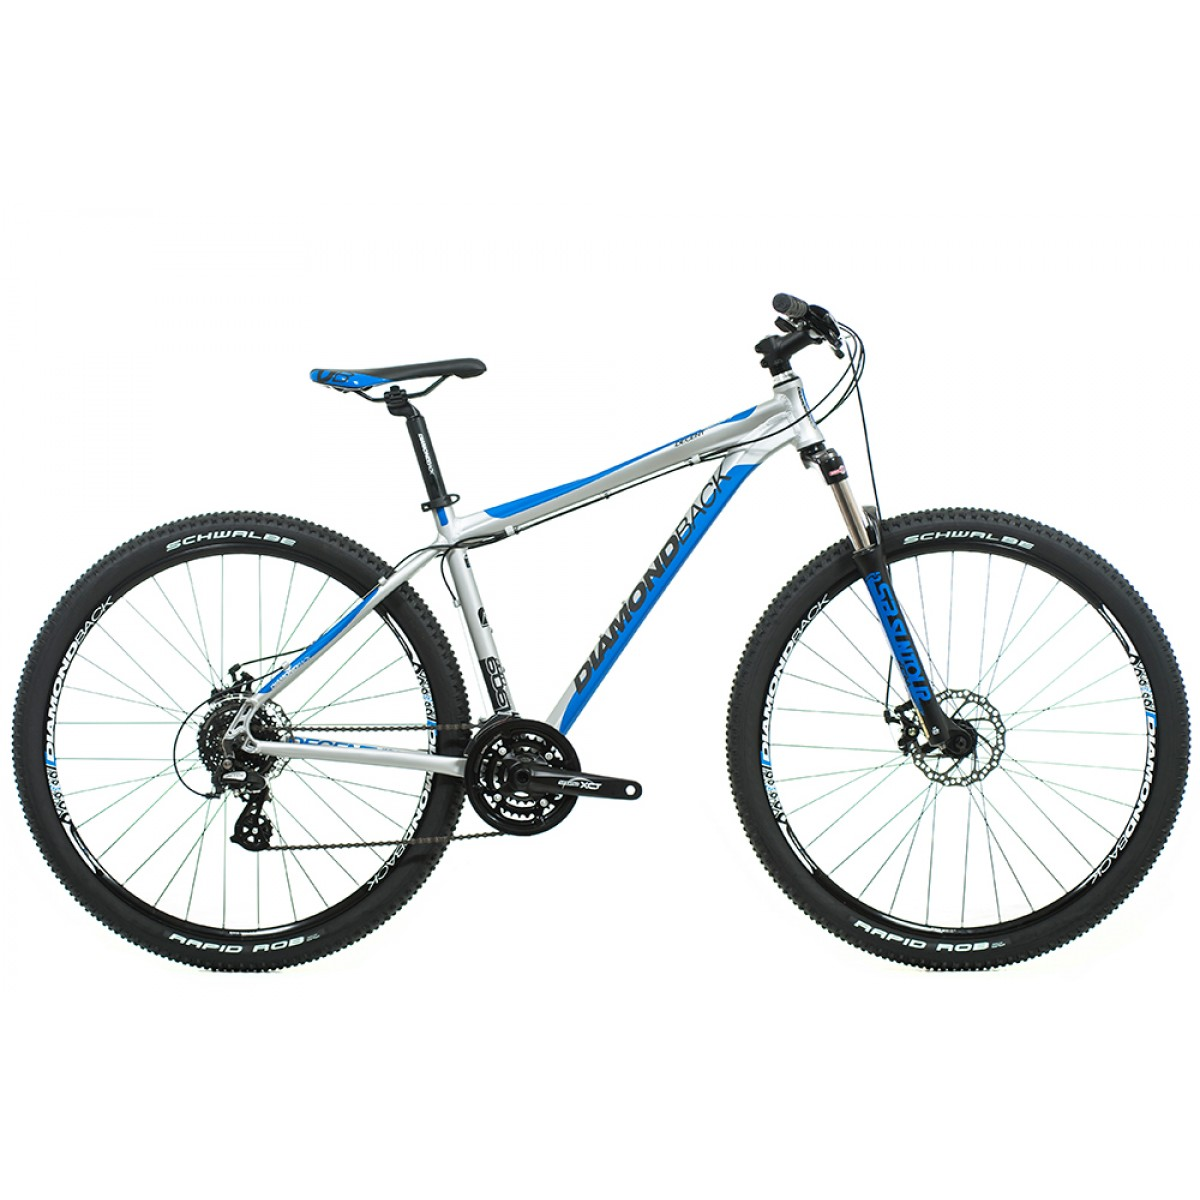 Clearance bike frames interstate travel coupons florida